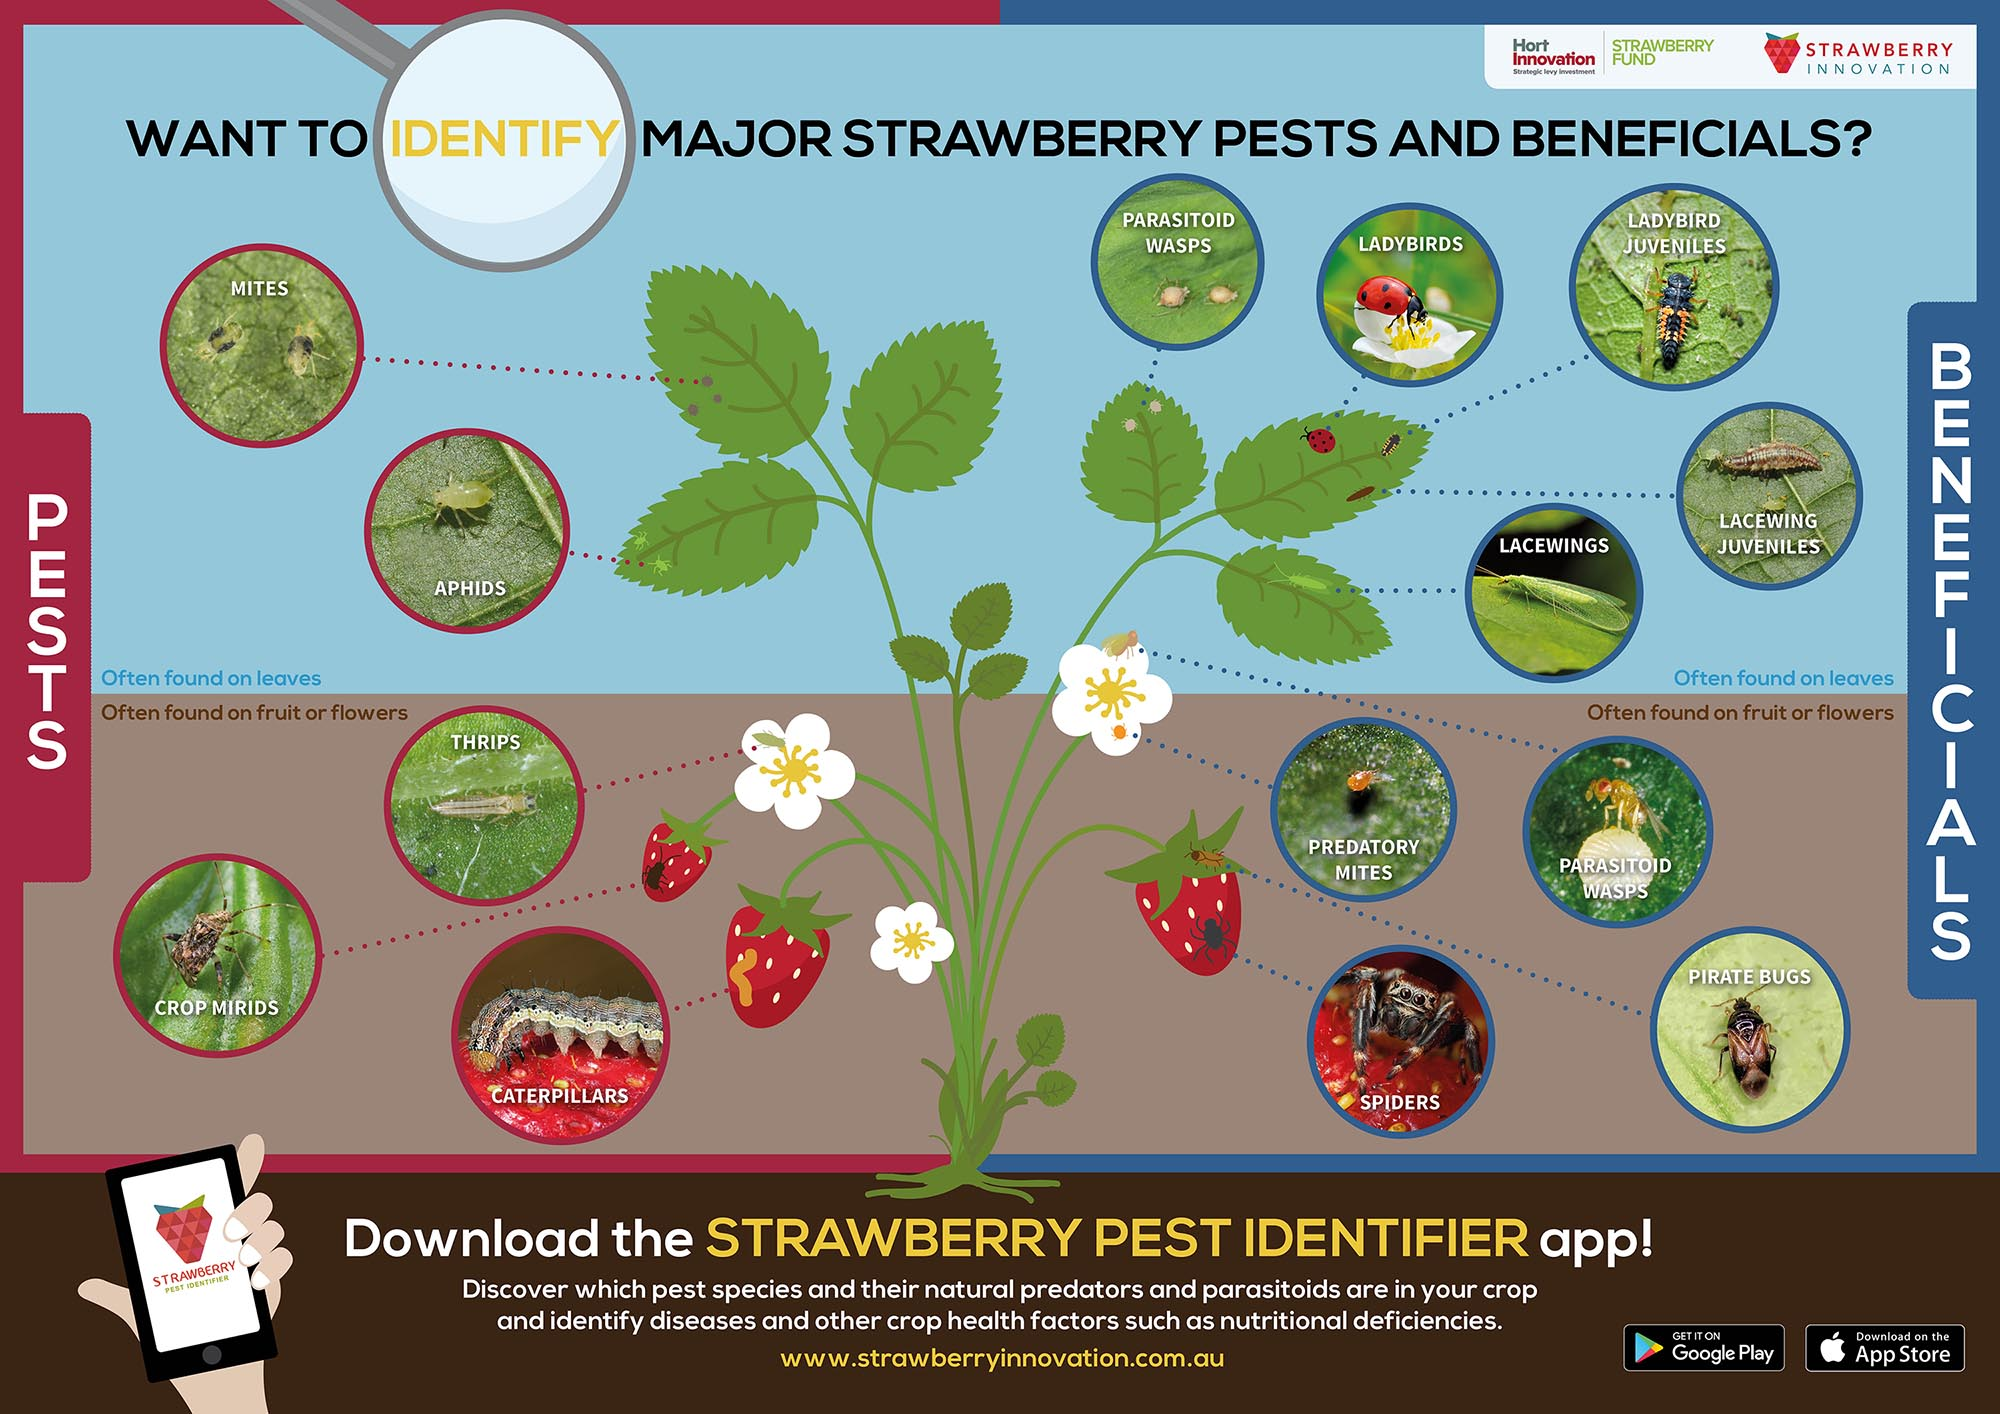 FINAL Strawberry Pests and Beneficials - WEB.jpg